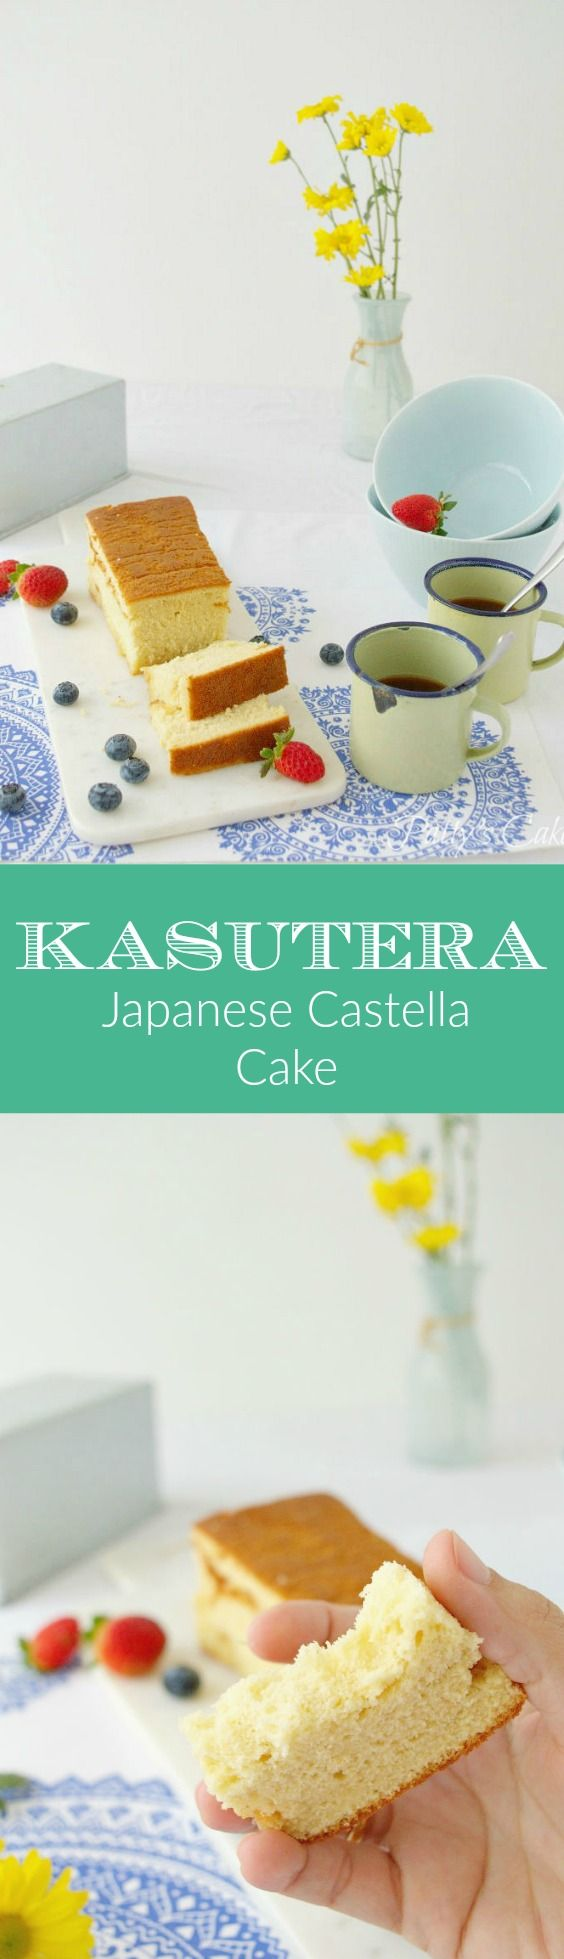 Kasutera or Castella - Japanese sponge cake - Bizcocho japonés - English recipe included